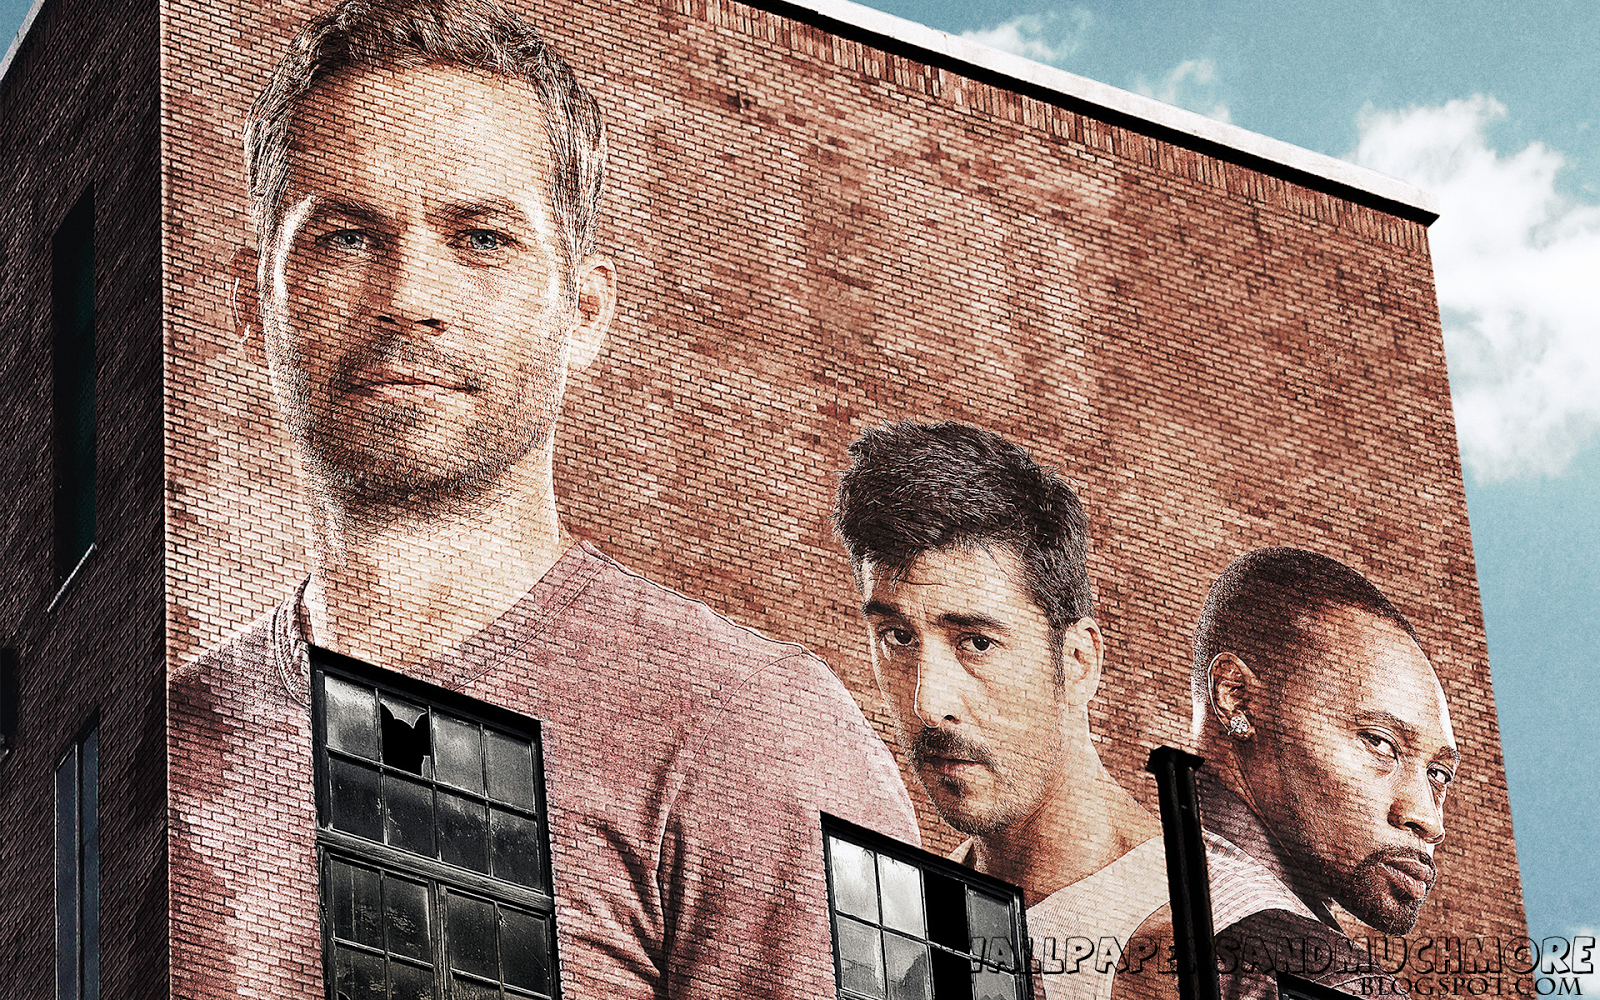 paul walker in brick mansions wallpapers - Paul Walker in Brick Mansions For Desktop